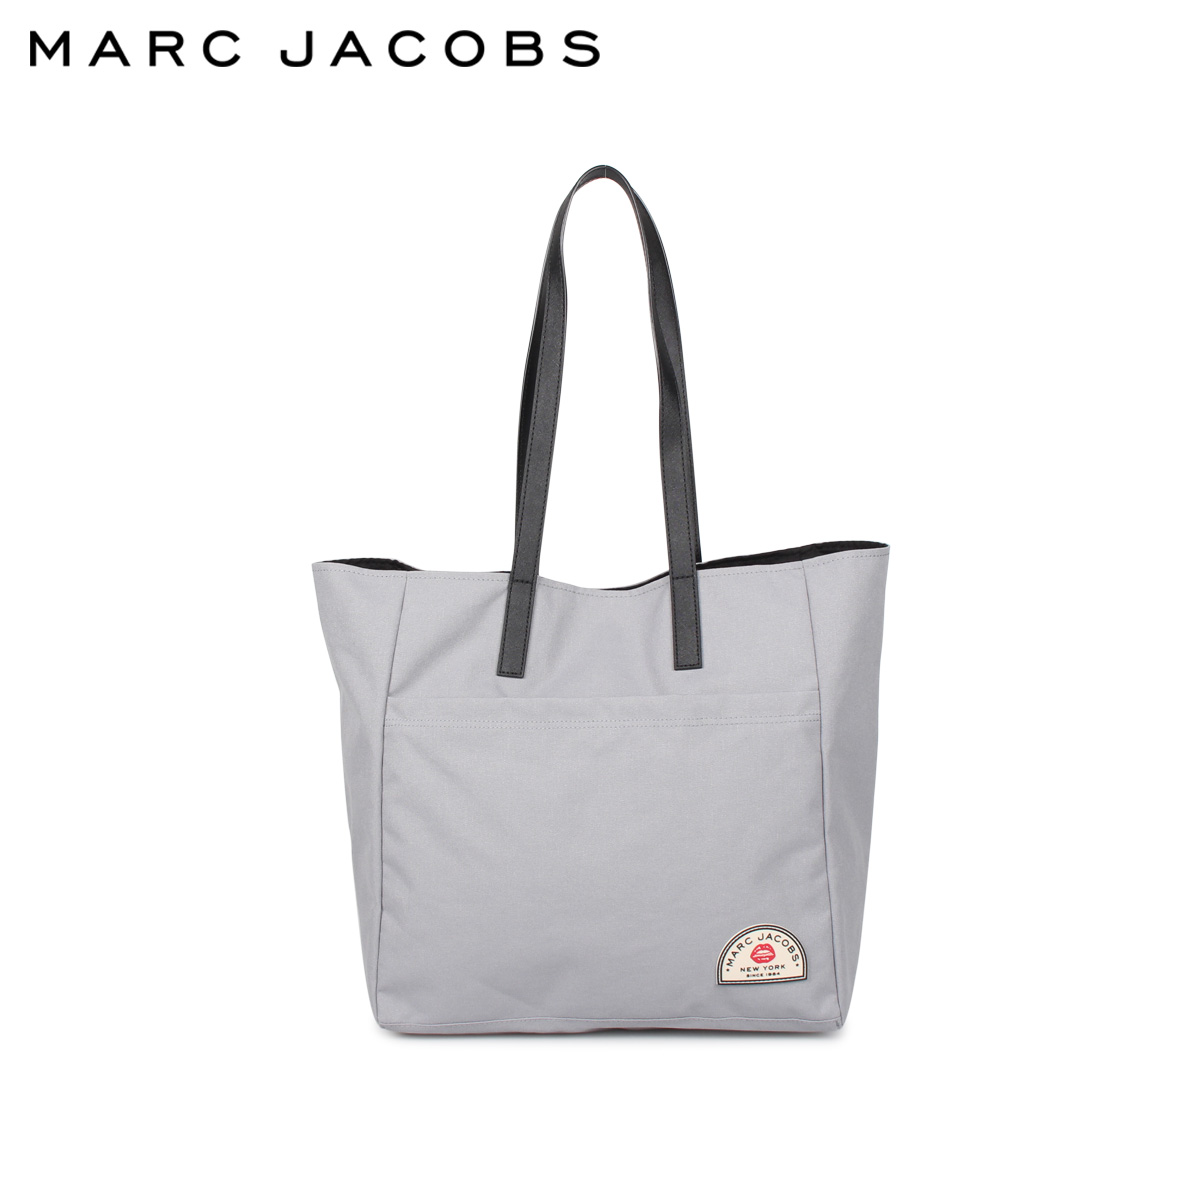 MARC JACOBS マークジェイコブス バッグ トートバッグ レディース TOTE BAG グレー M0015409-041